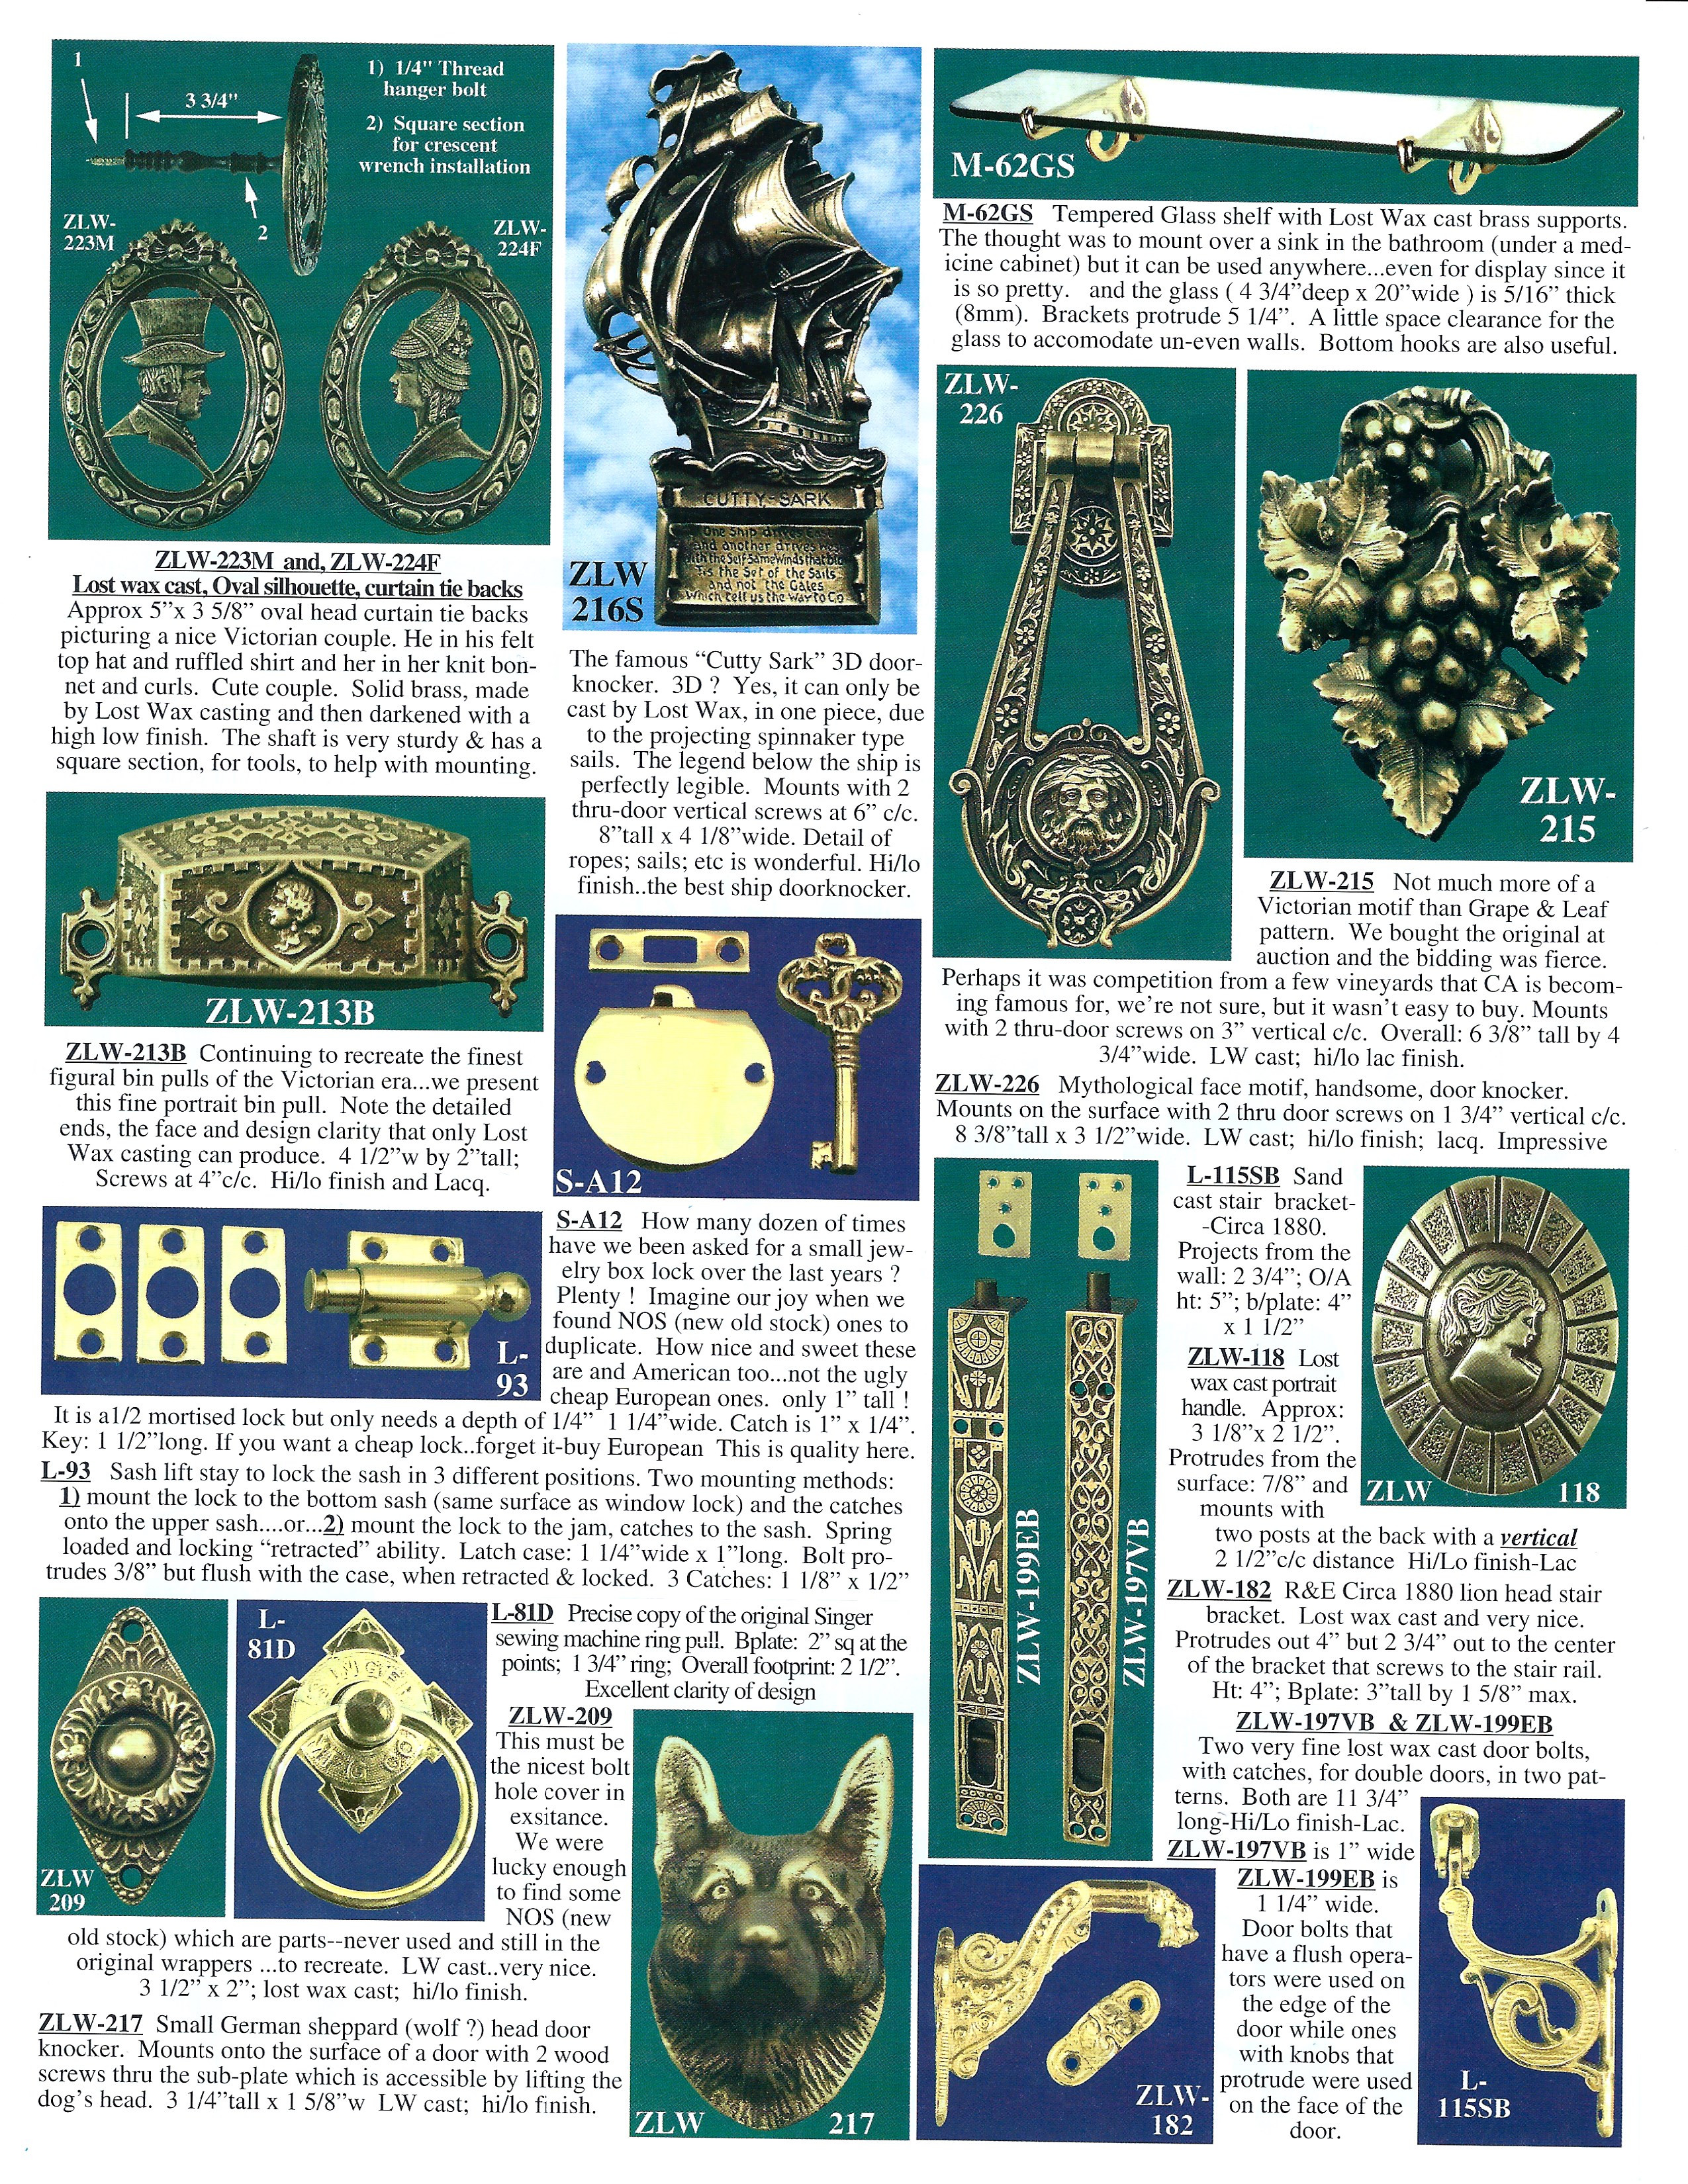 Catalog page 42